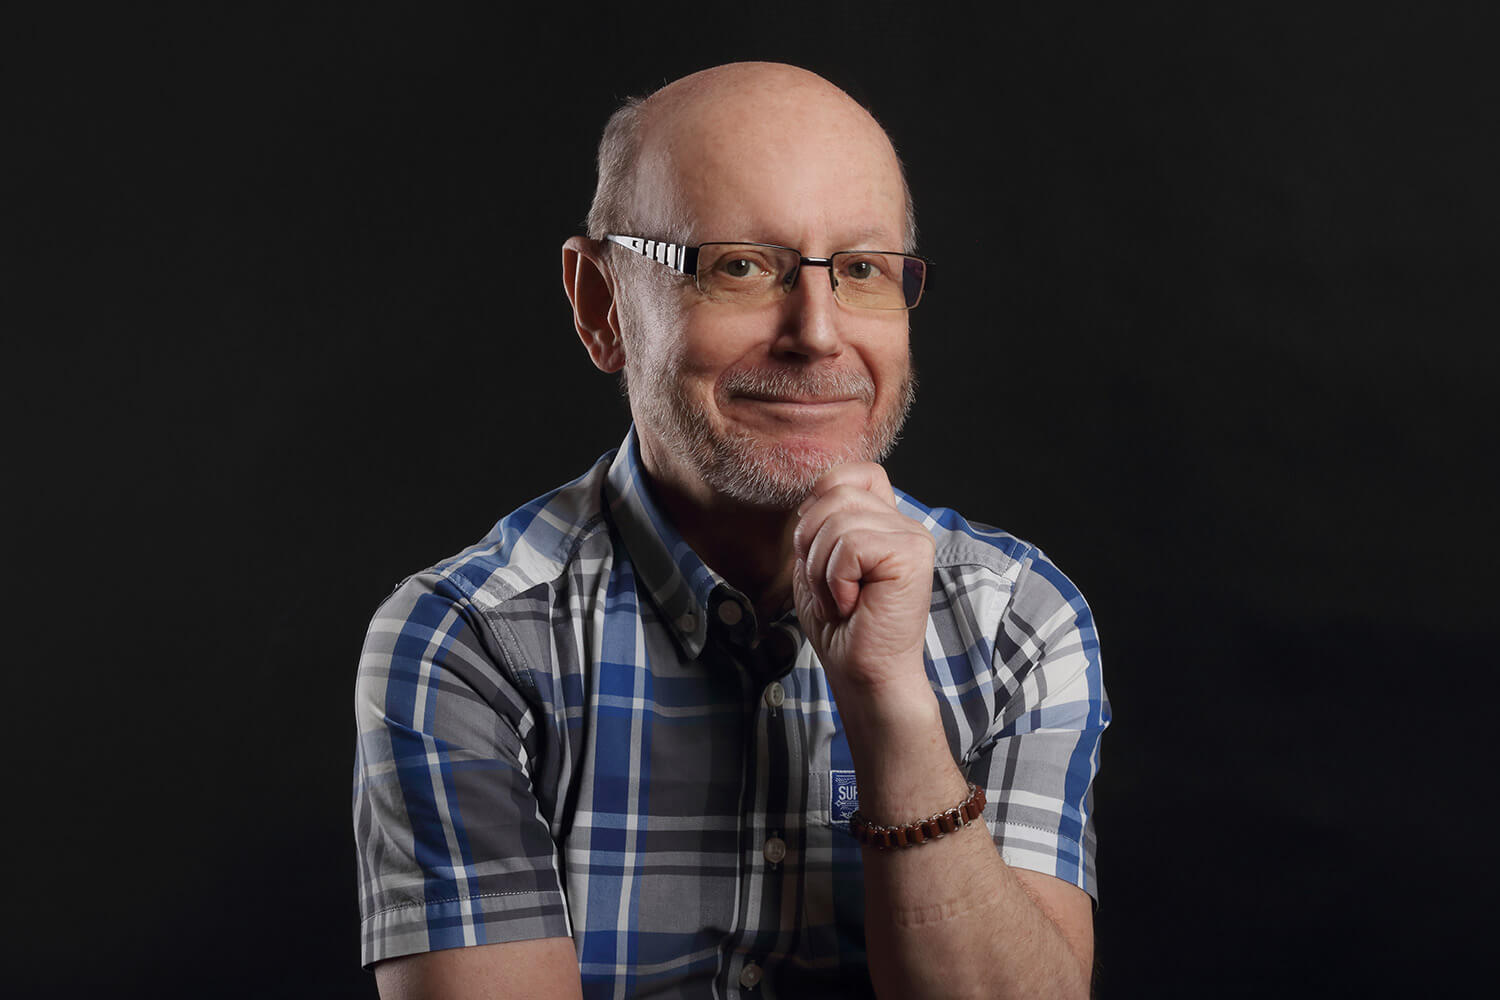 male portrait in a checked shirt and with glasses on a black background